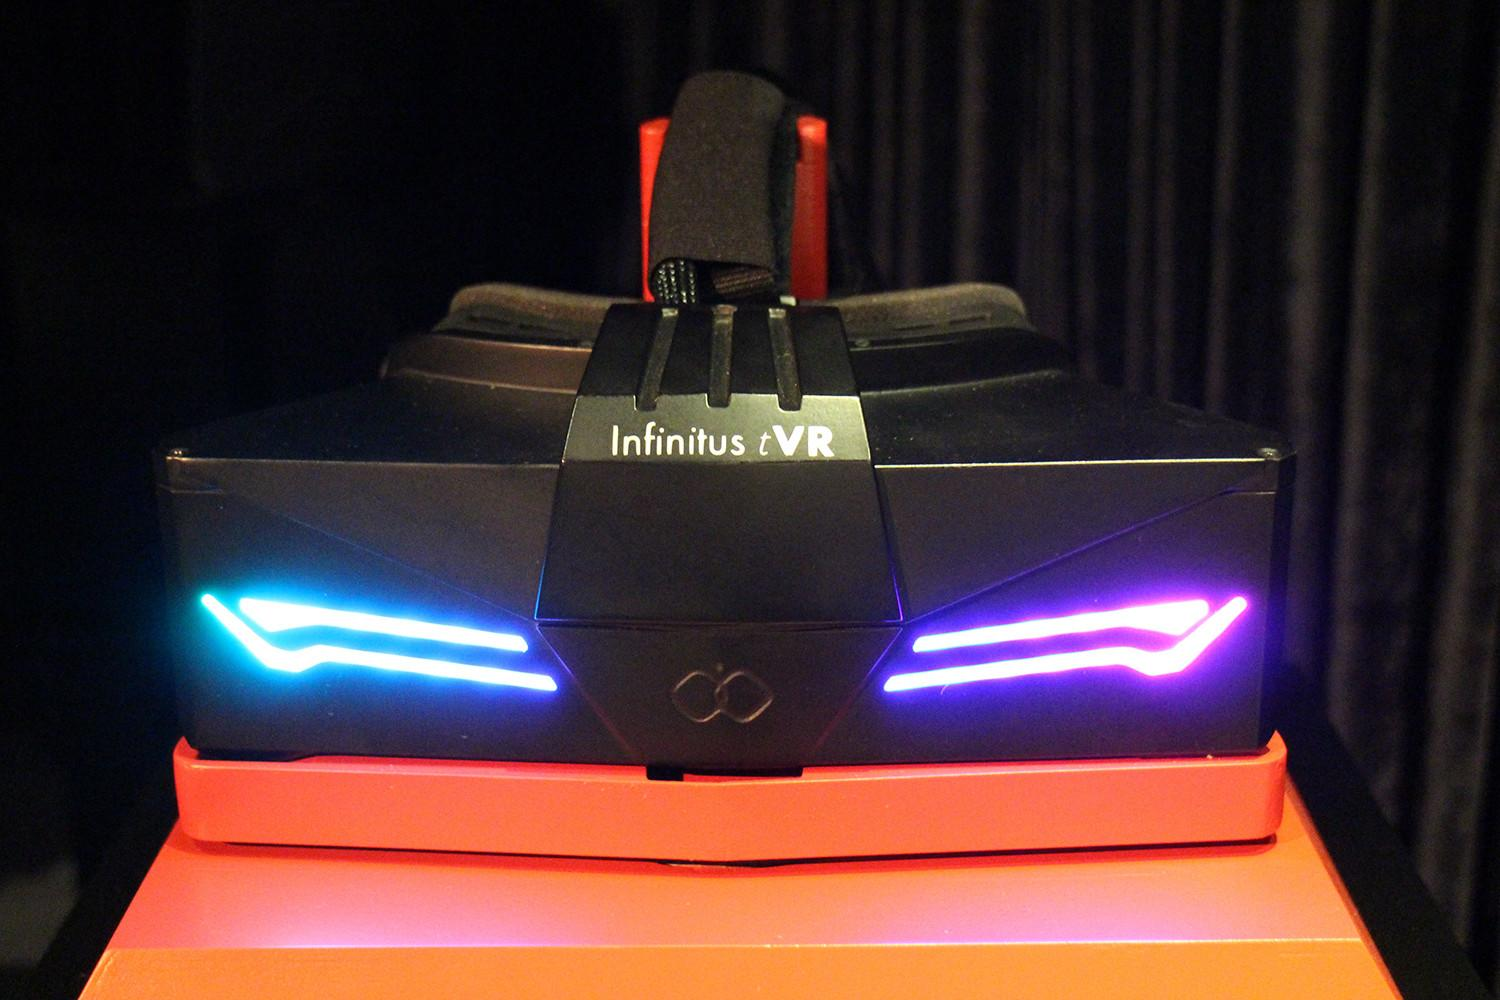 Infinitus puts the Rift and Vive to shame with its new, high-resolution Prime tVR headset